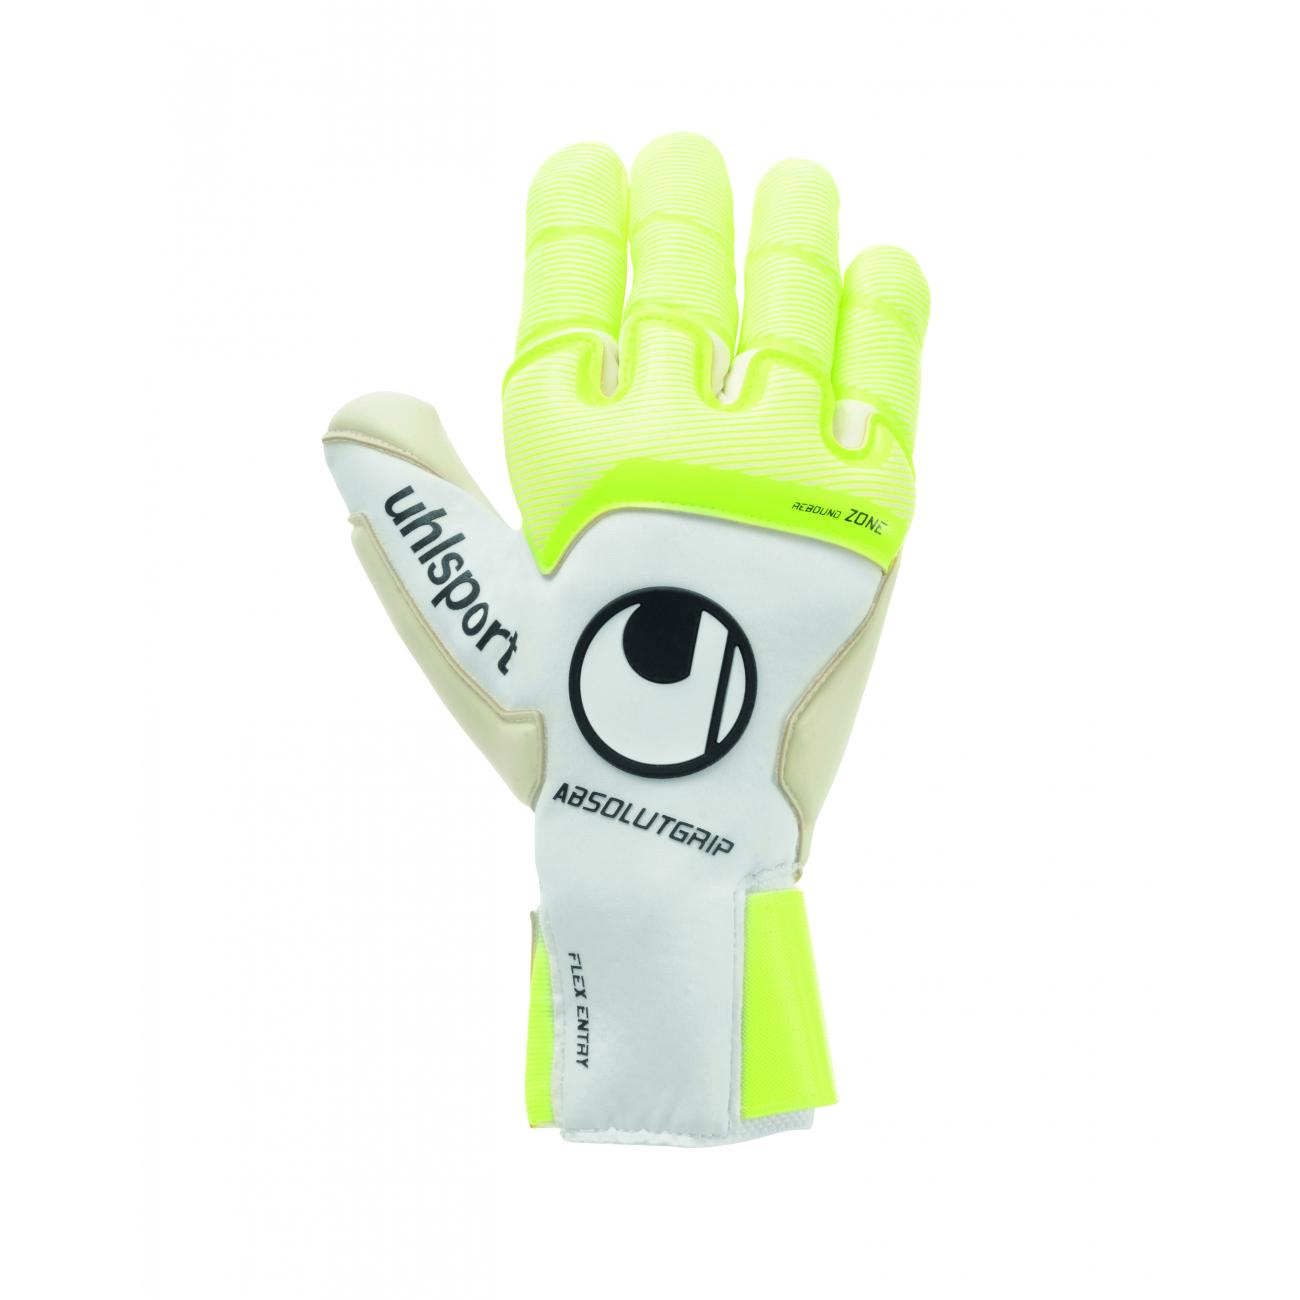 Uhlsport Pure Alliance absolutgrip reflex